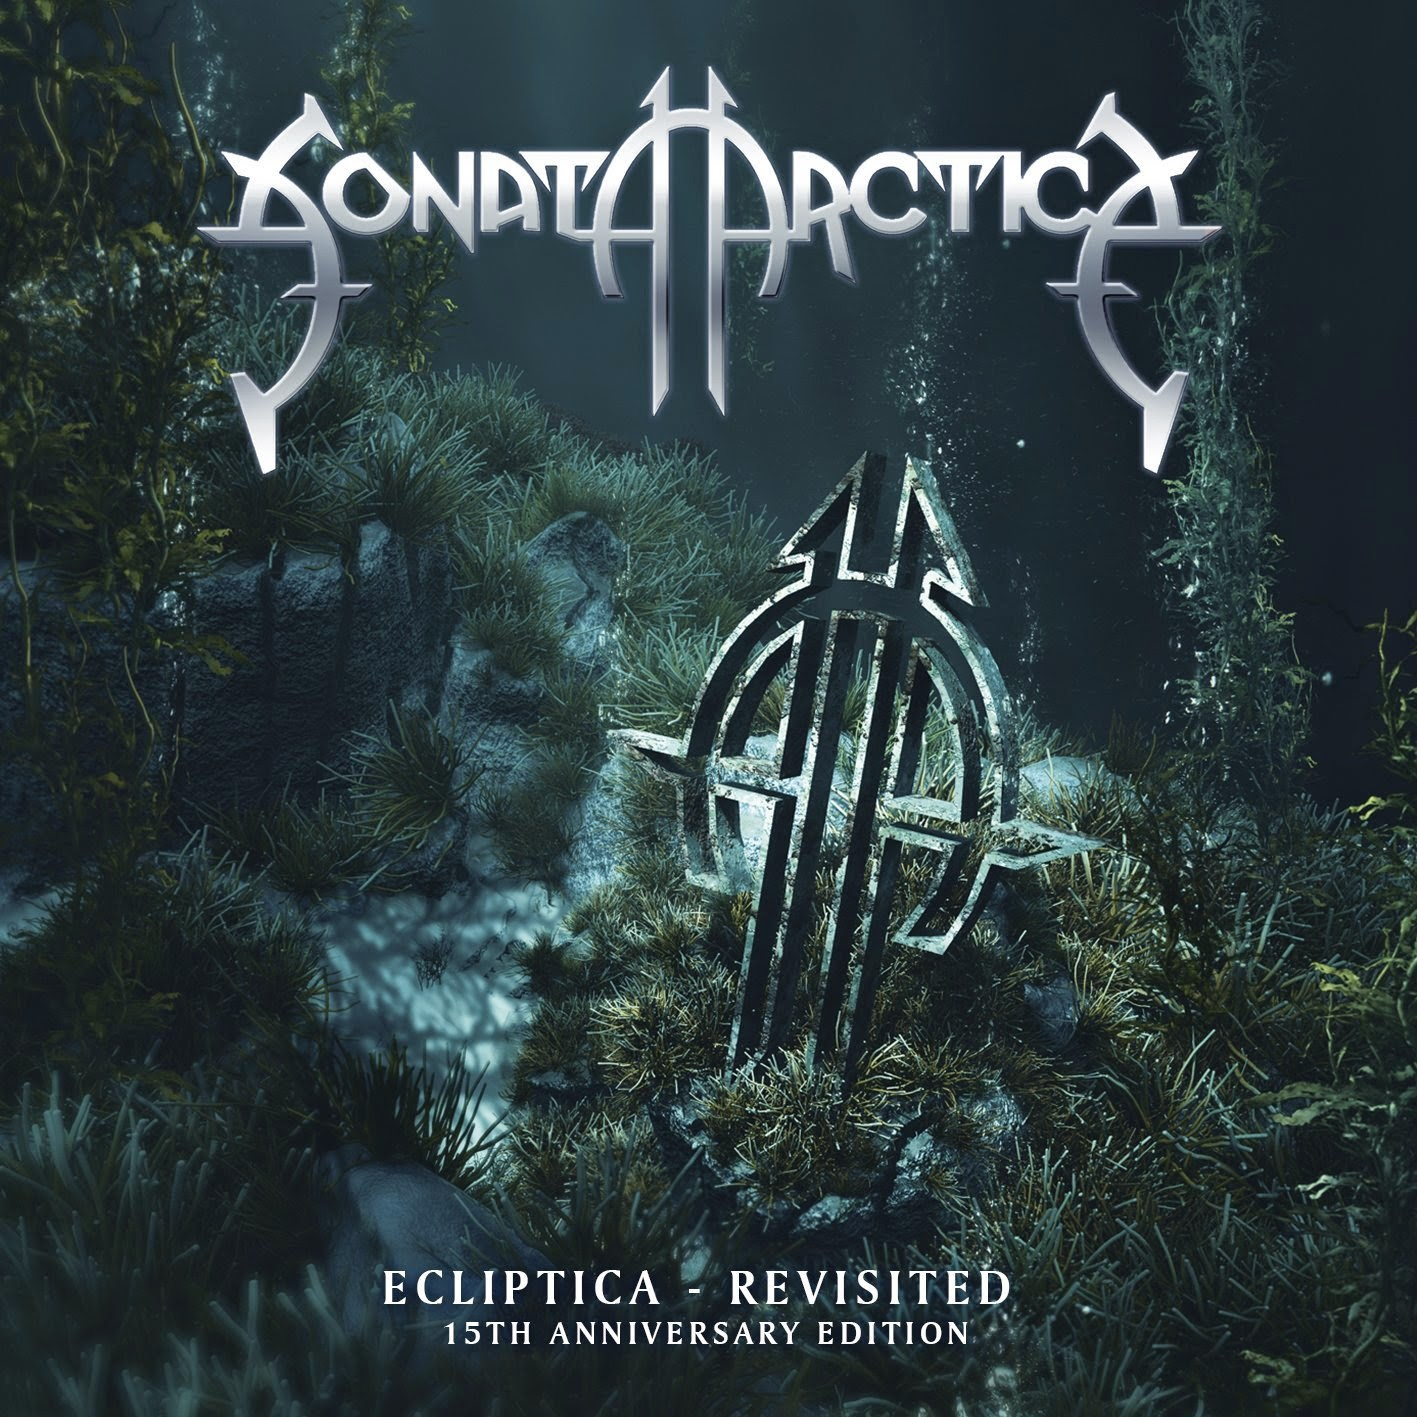 http://rock-and-metal-4-you.blogspot.de/2014/10/cd-review-sonata-arctica-ecliptica-revisited.html